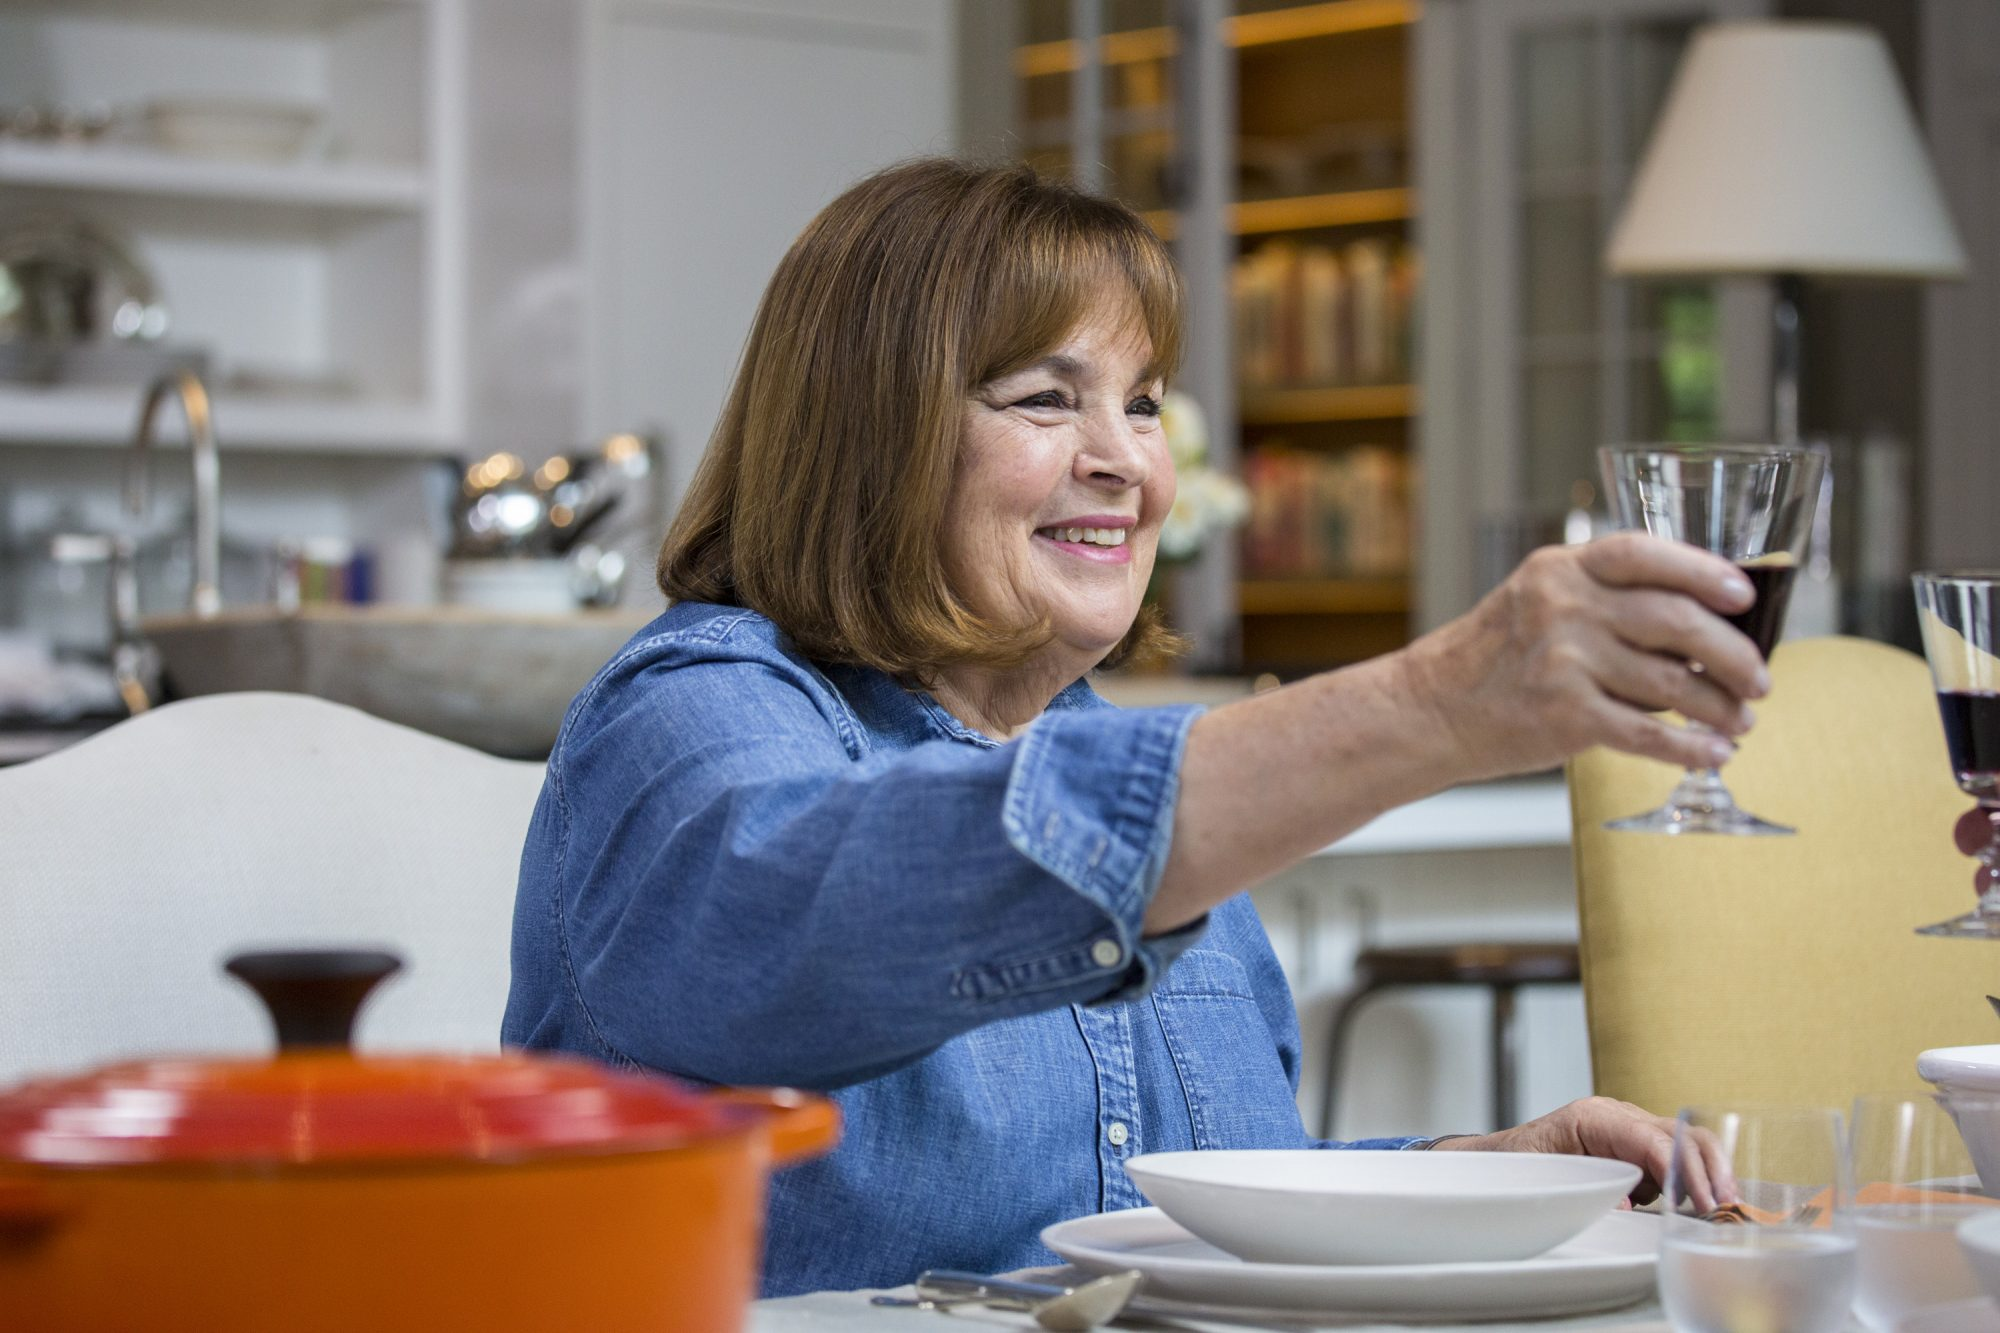 040320_Getty Ina Garten Cosmos